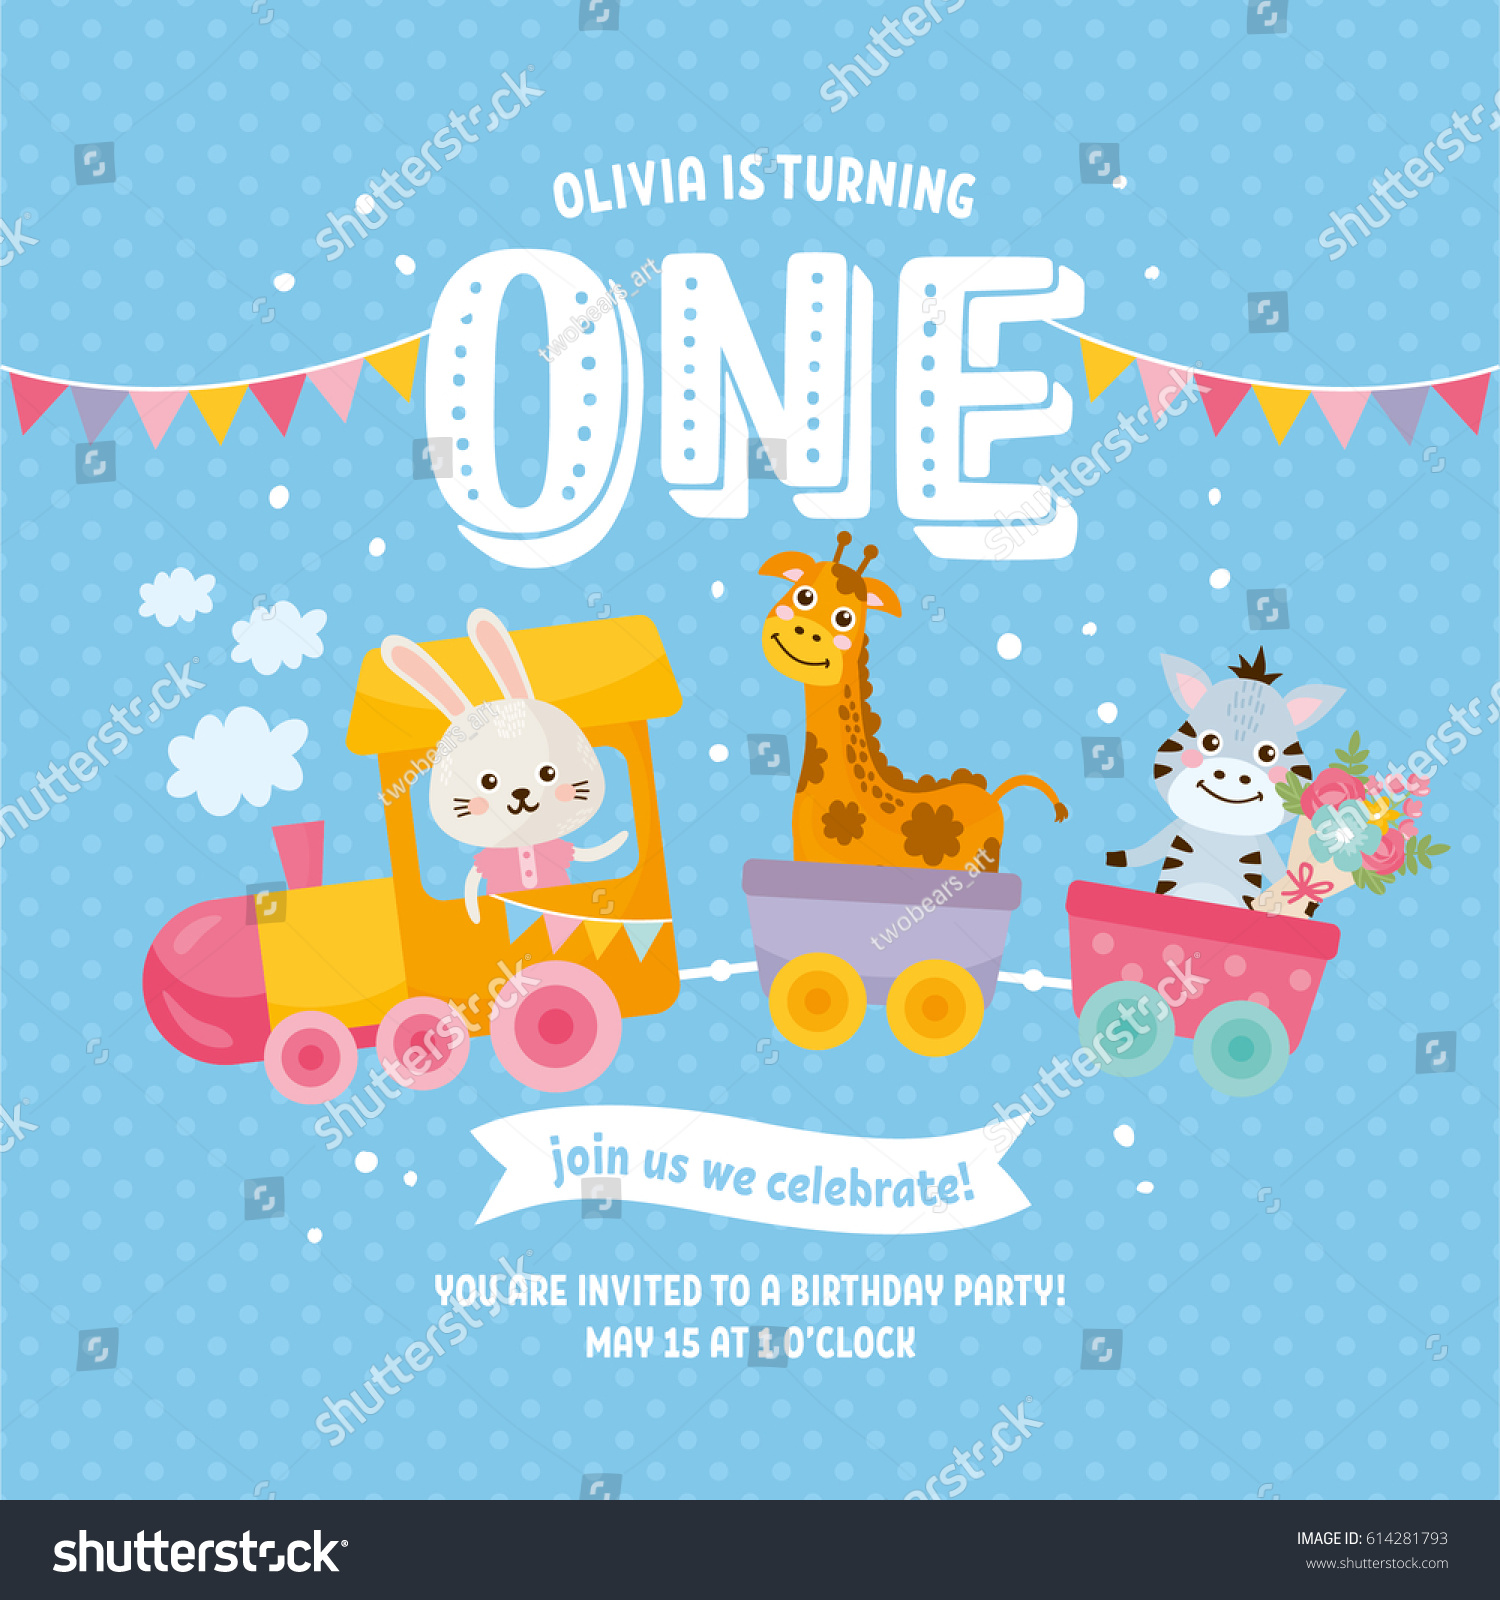 Happy Birthday Greeting Card Design Invitation Template With Cute Animals Letters One